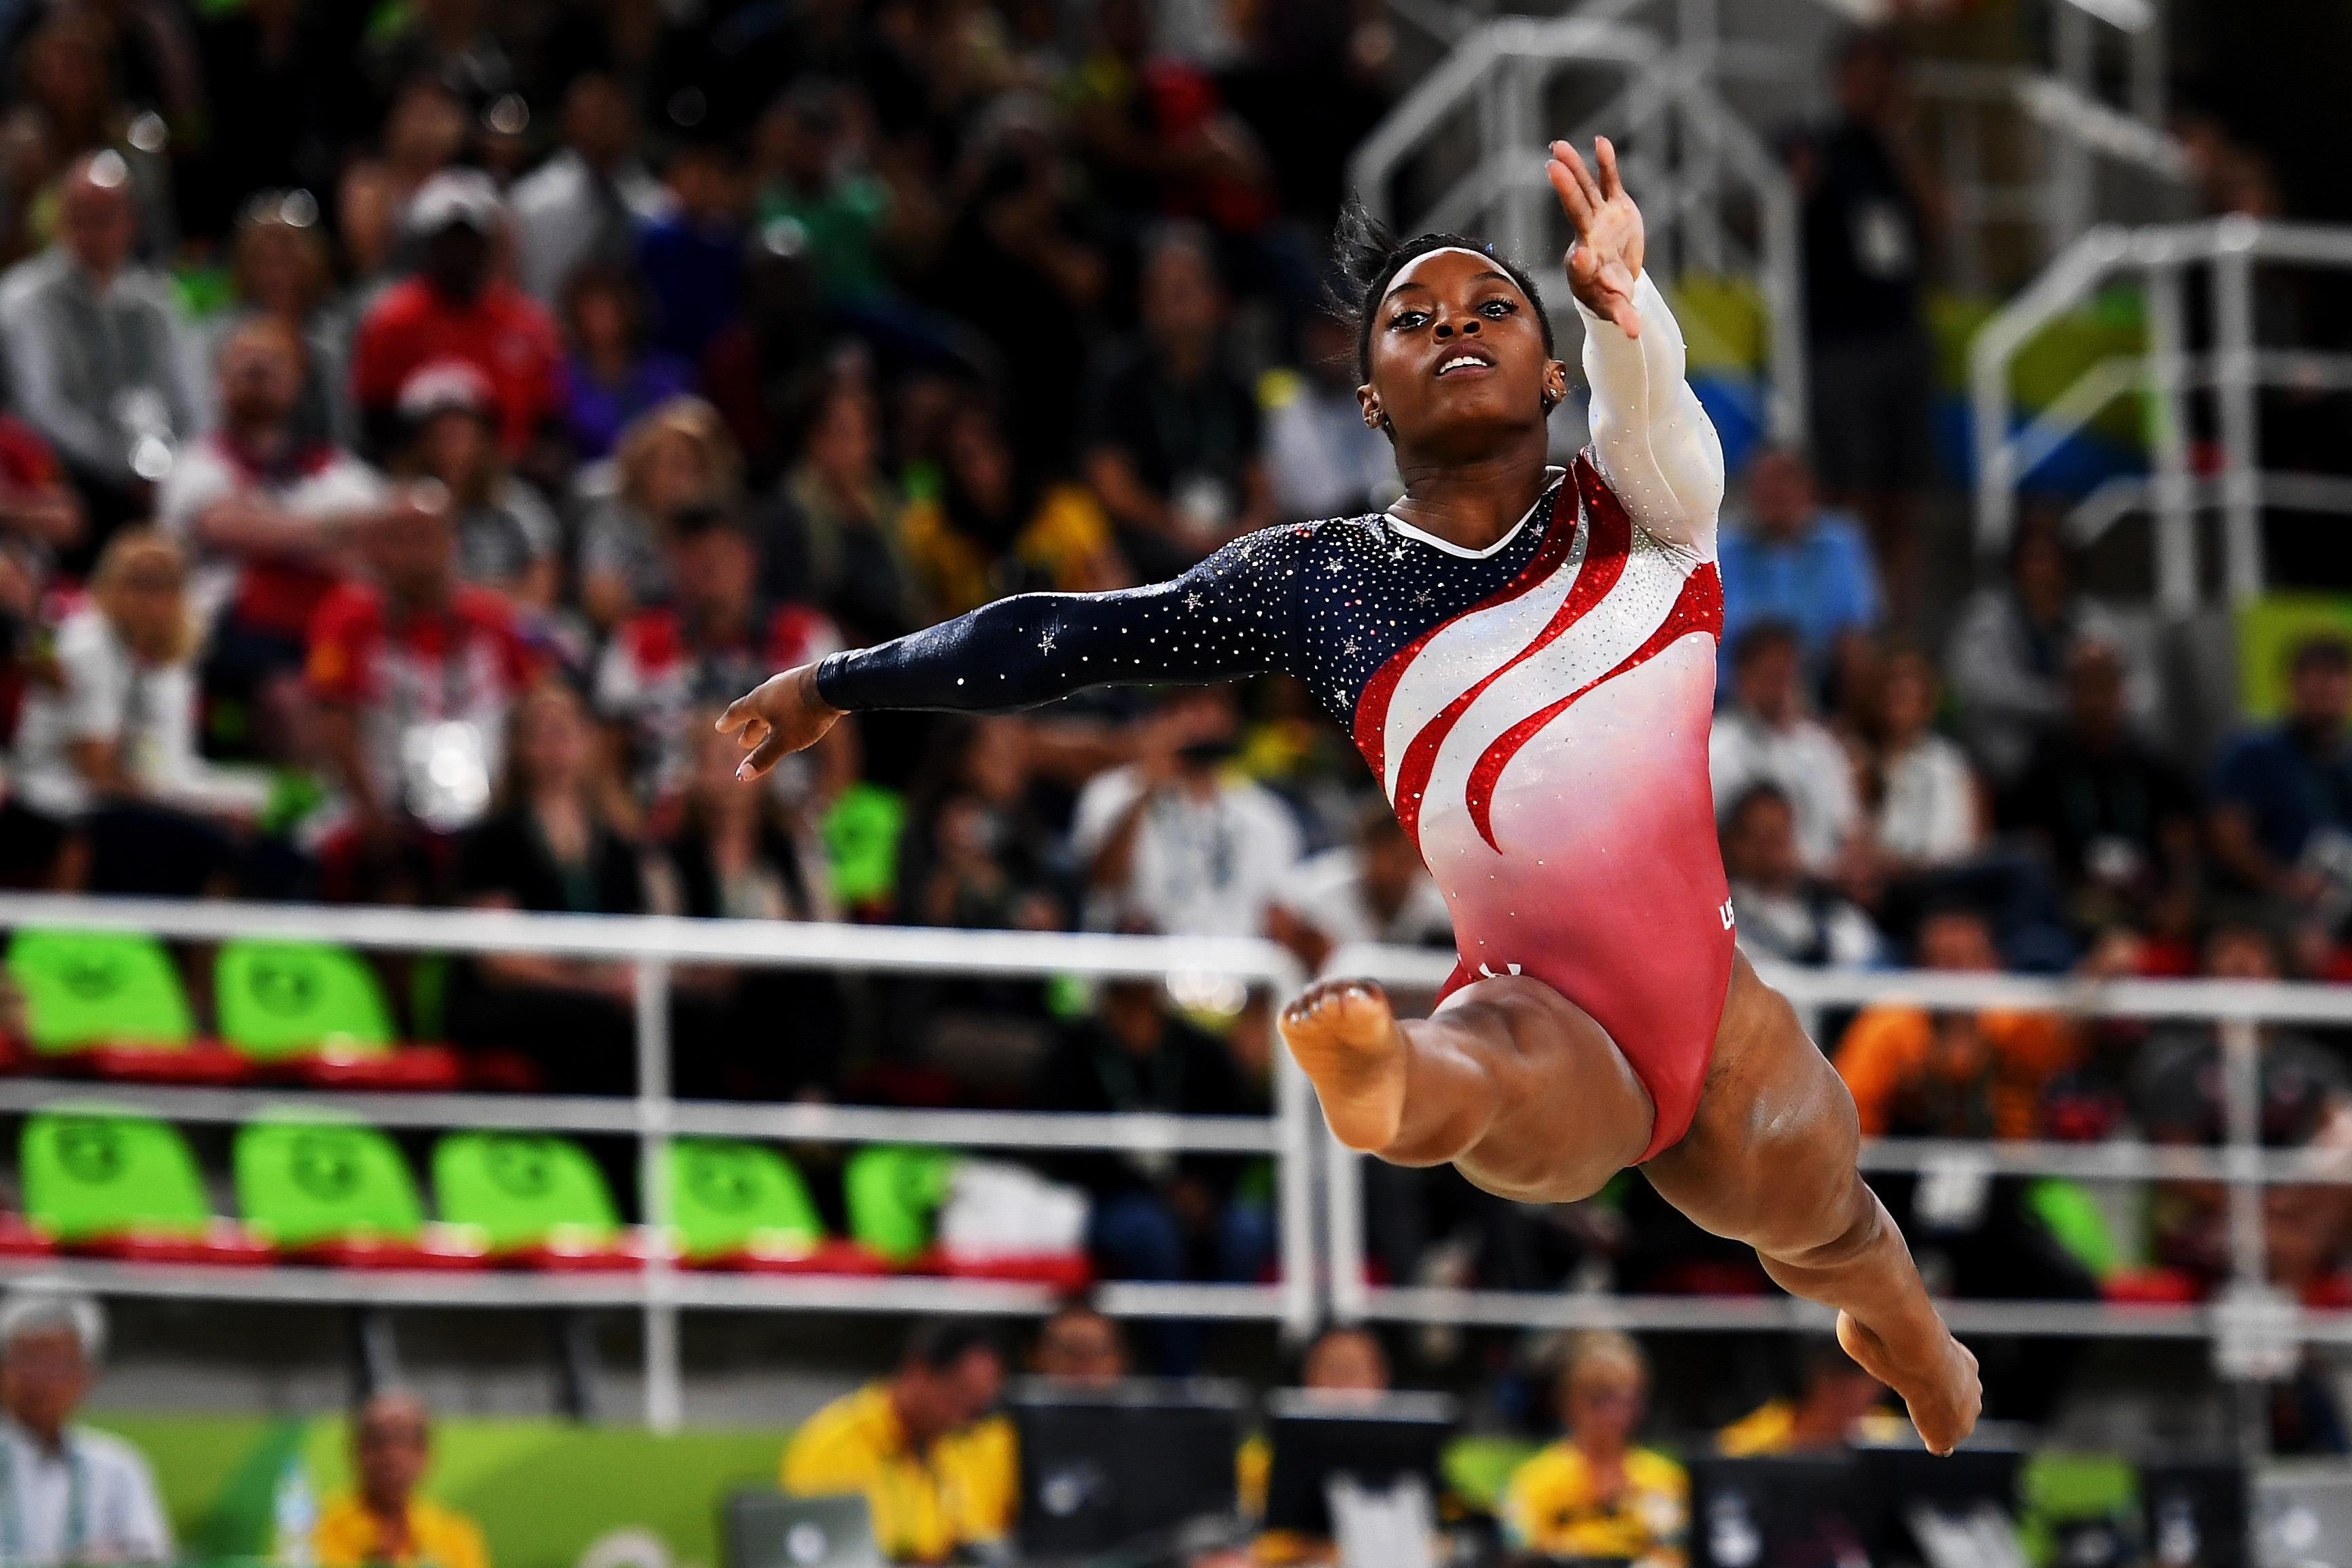 """Gymnastics phenom Simone Biles competes in the floor exercise, where she earned a 15.80 score after the U.S. had clinched gold. """"Yes, I was having fun out there,"""" she said."""